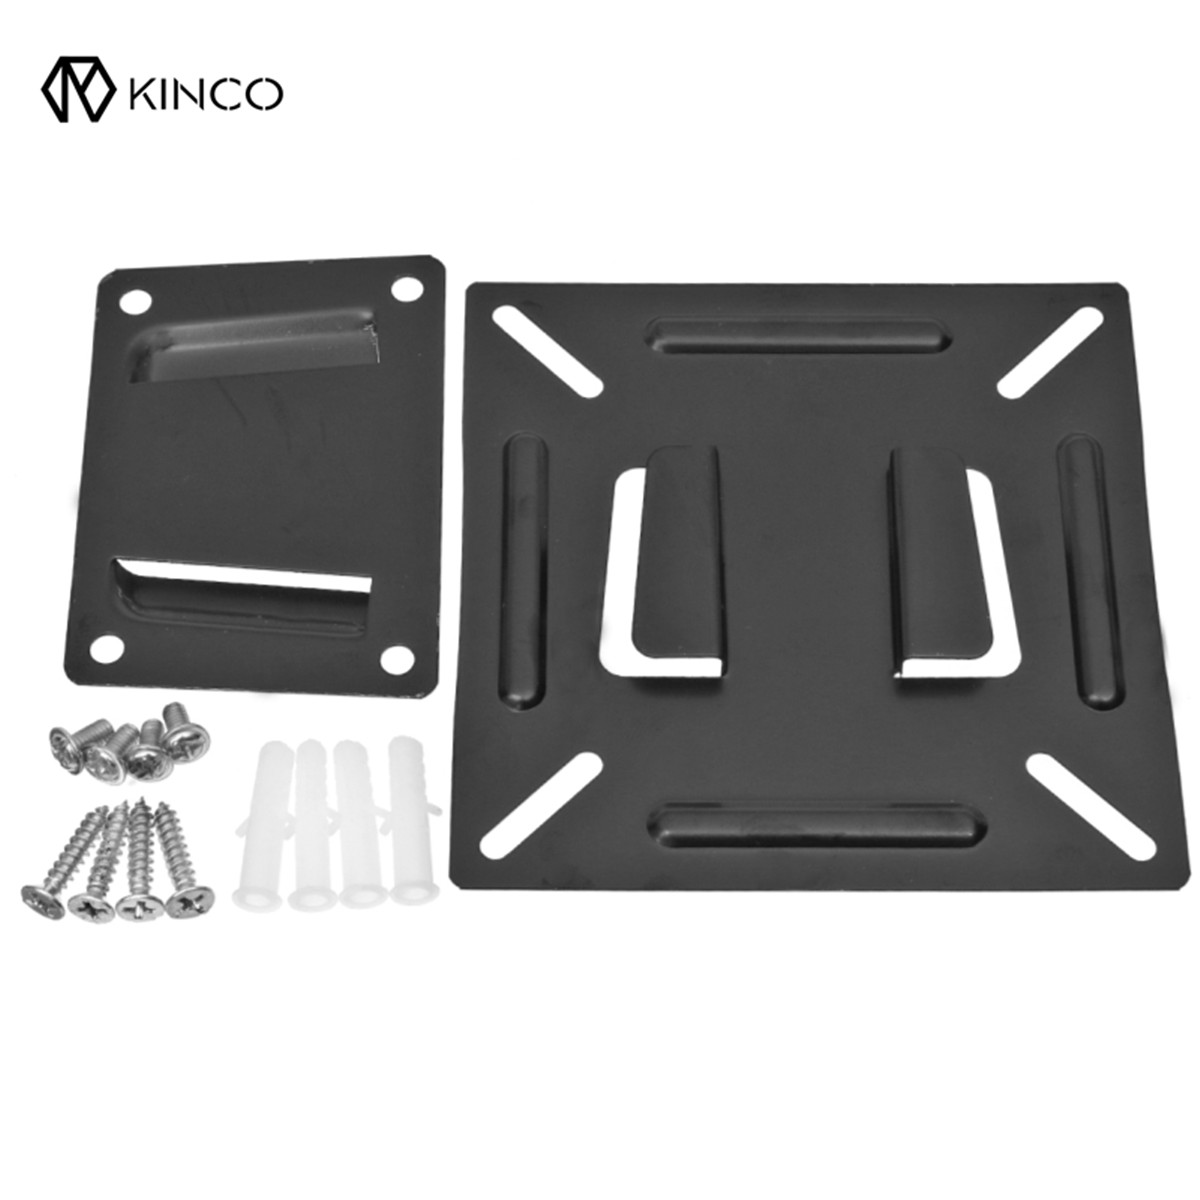 KINCO 12-24 Inch Screen Wall Mount Bracket LCD LED Plasma Monitor TV